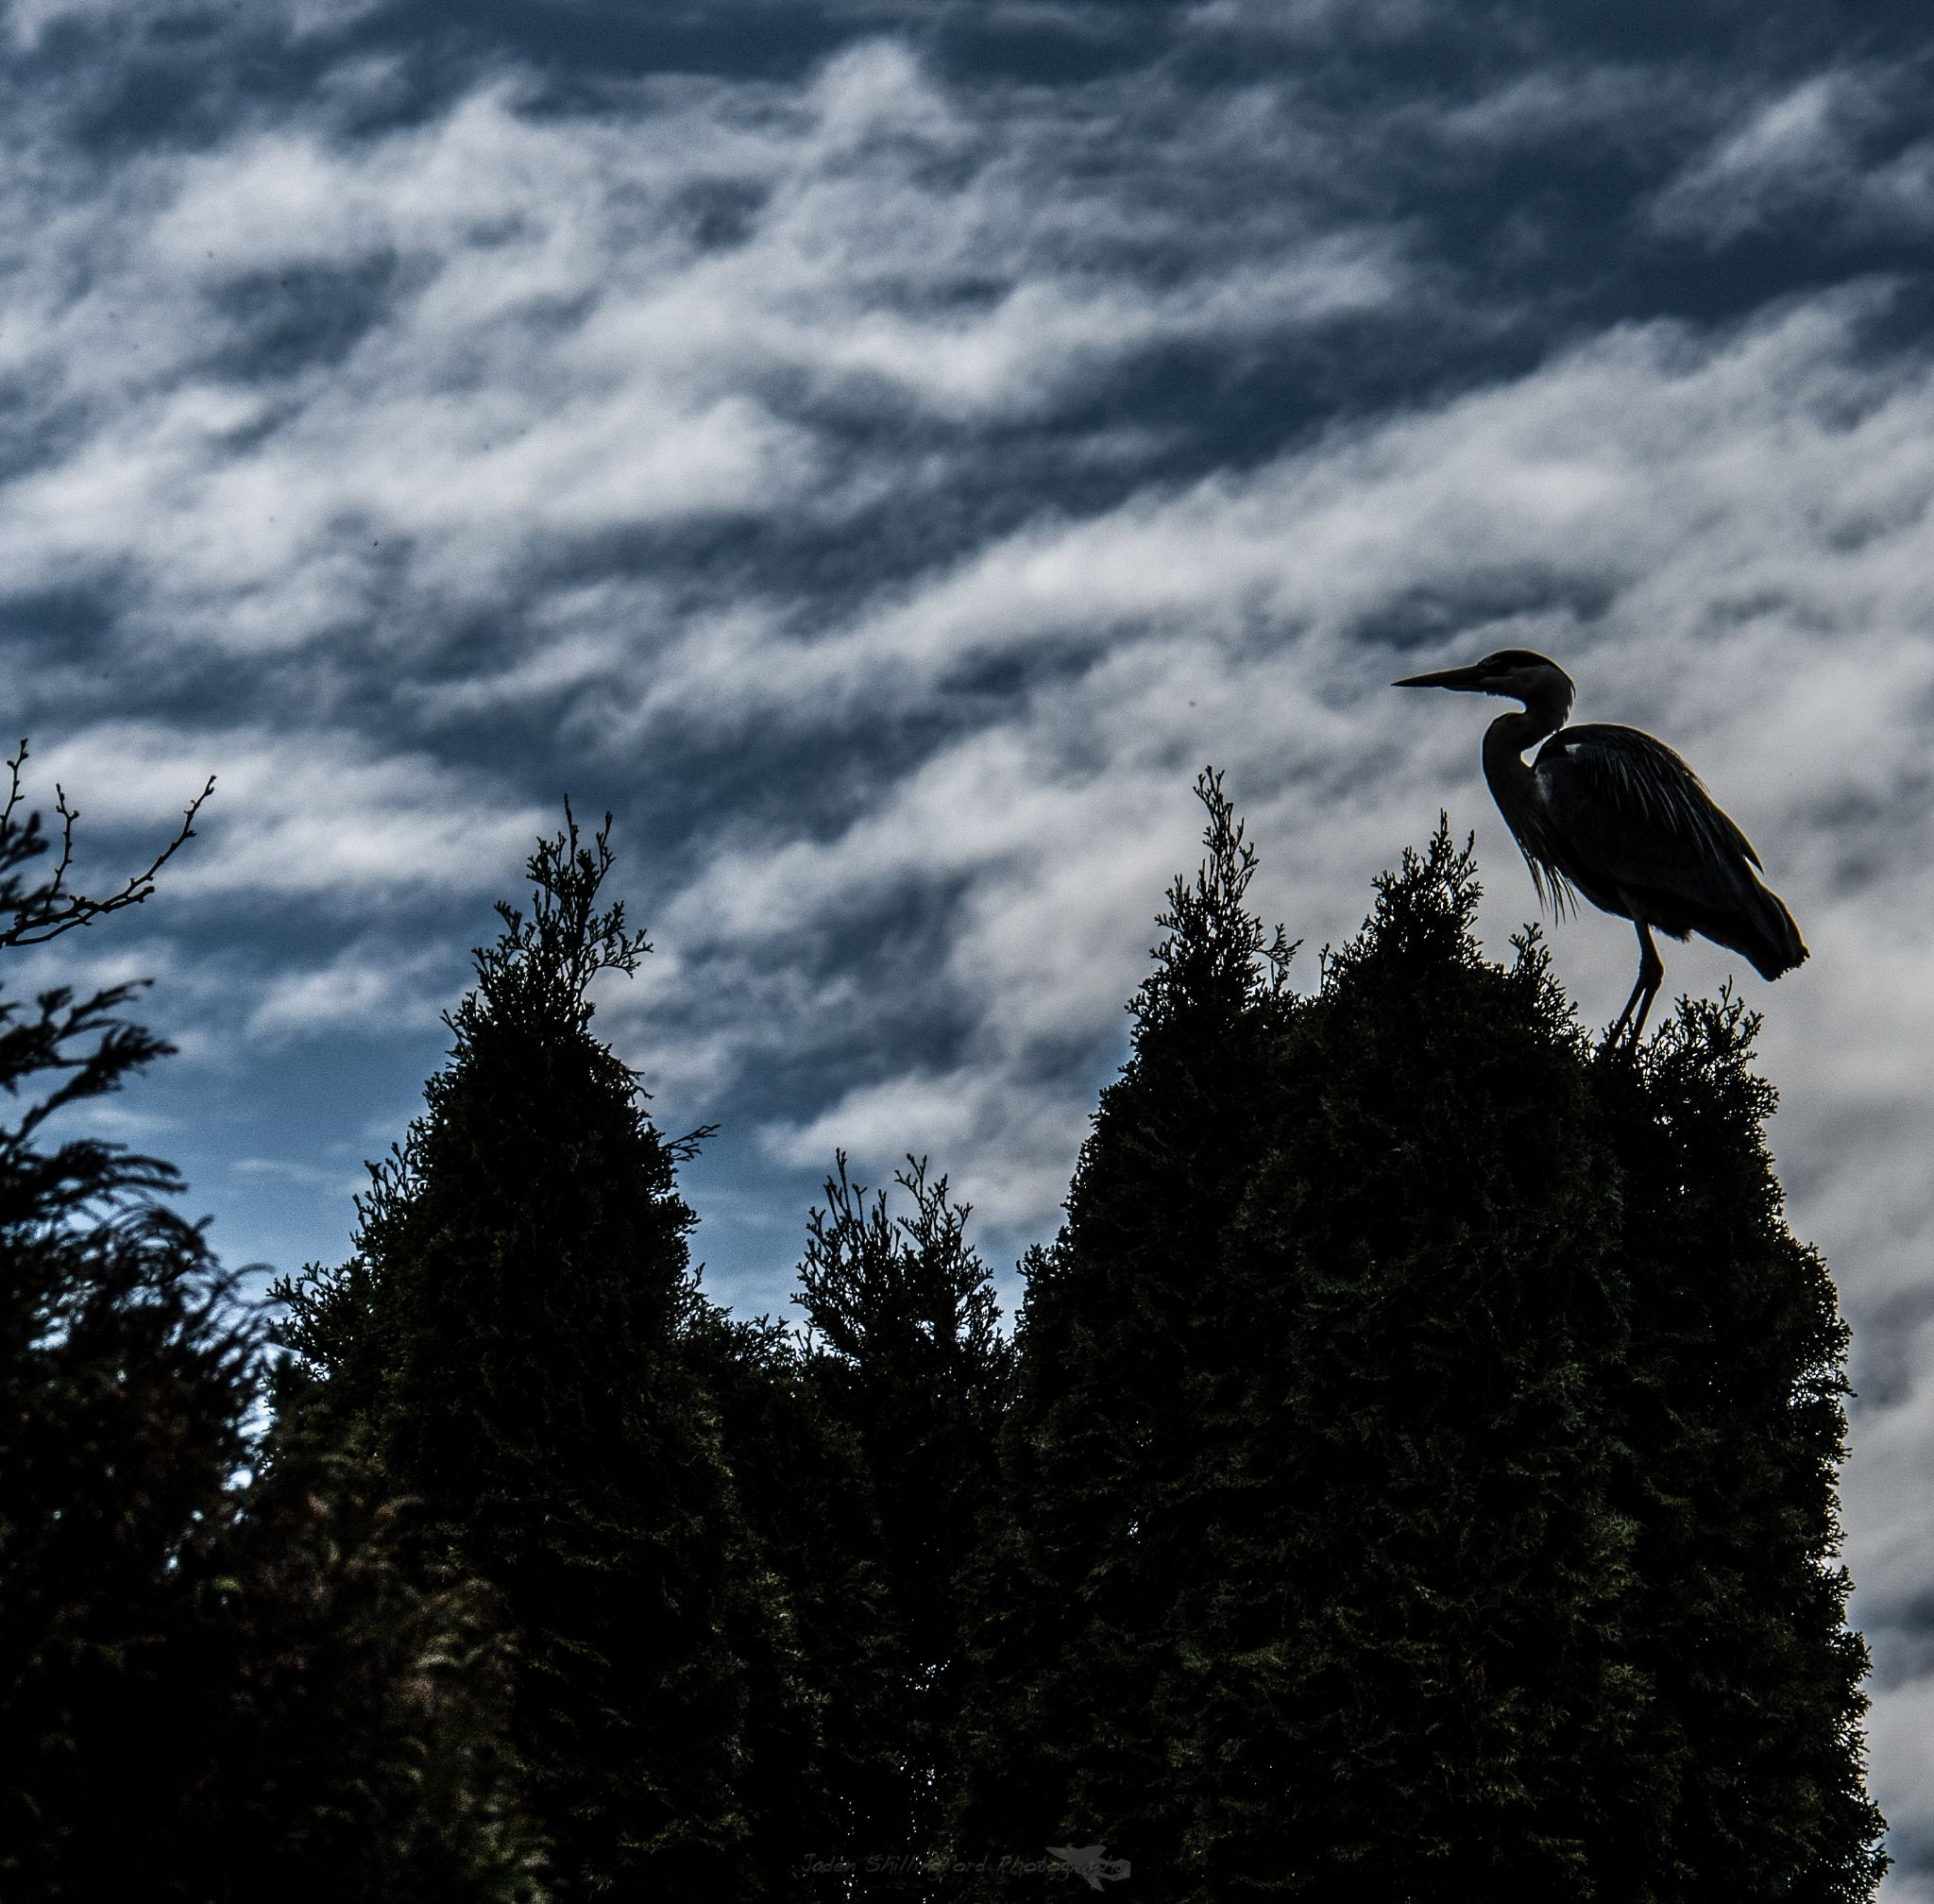 heron on the trees by jaden shillingford